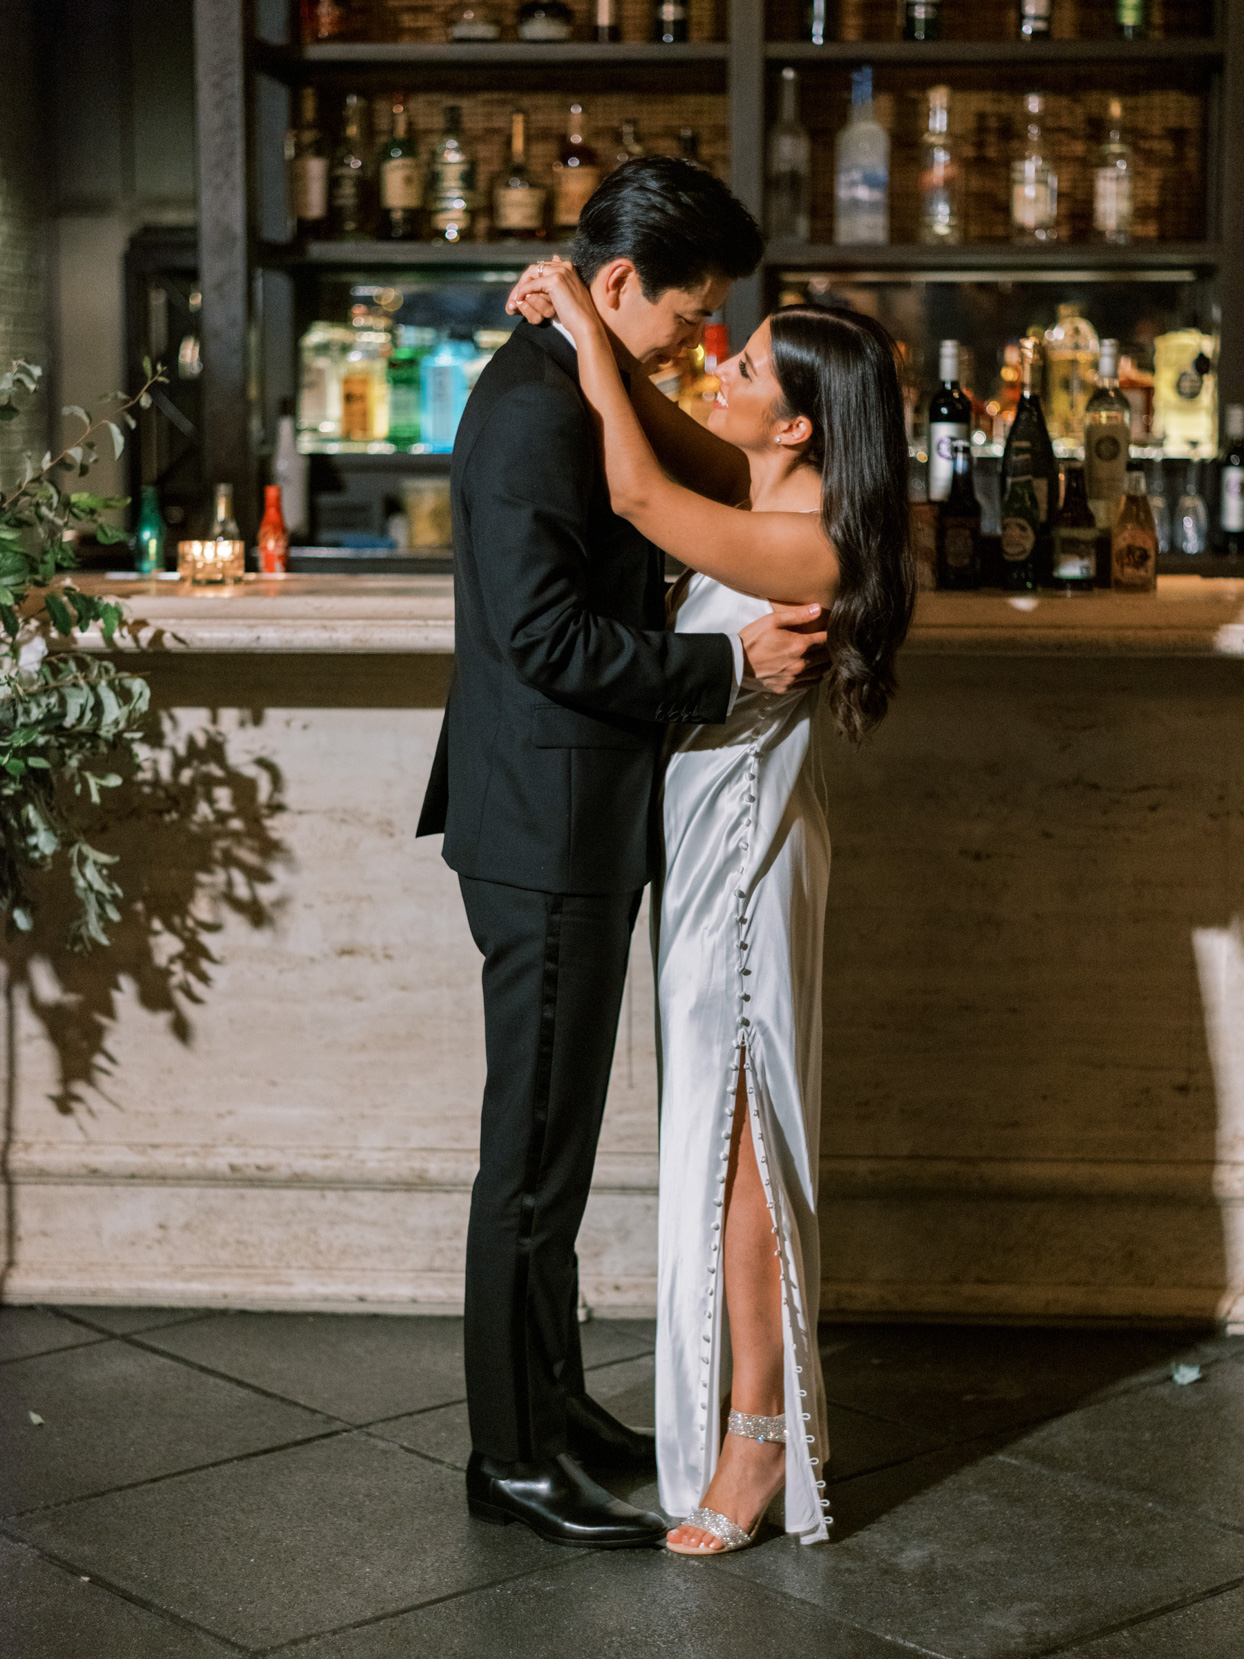 bride and groom embracing in front of bar after bride's outfit change